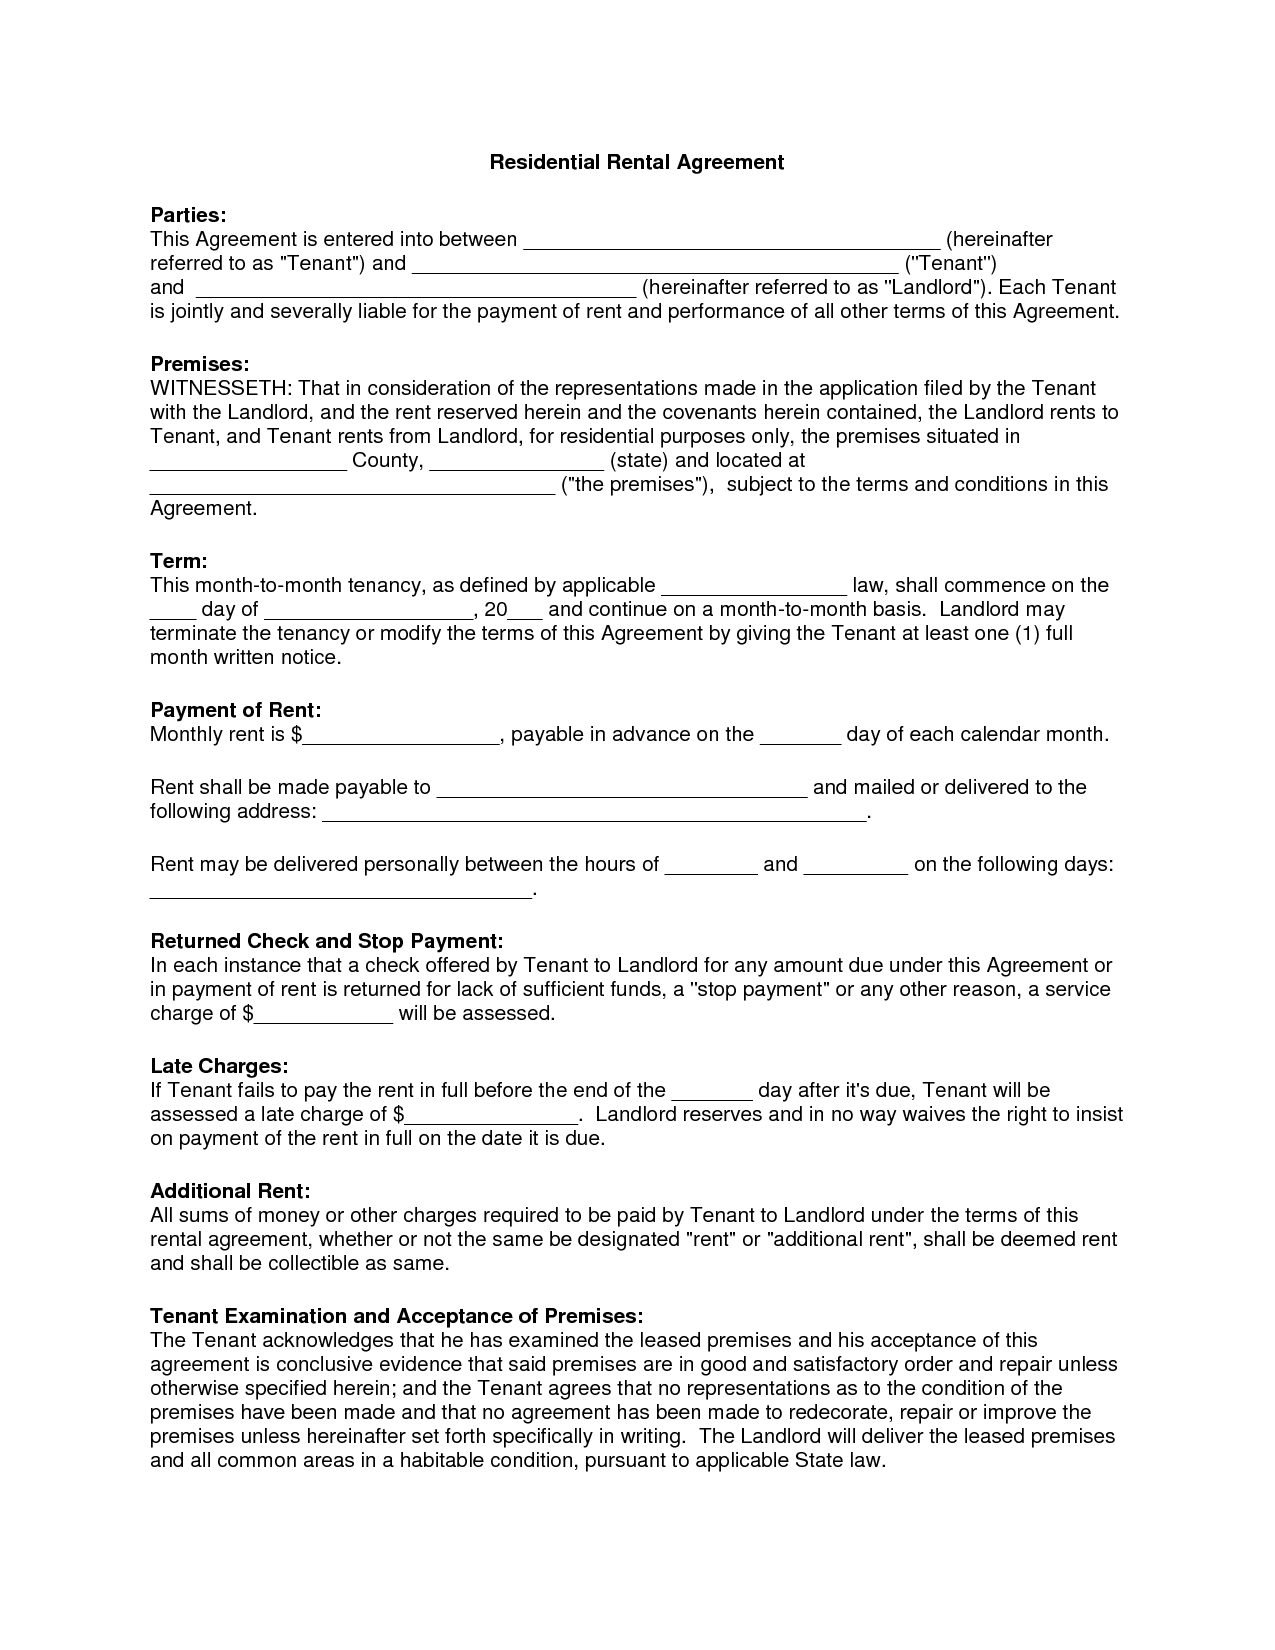 Residential Rental Agreement Lease Agreement Rental Agreement Templates Lease Agreement Free Printable